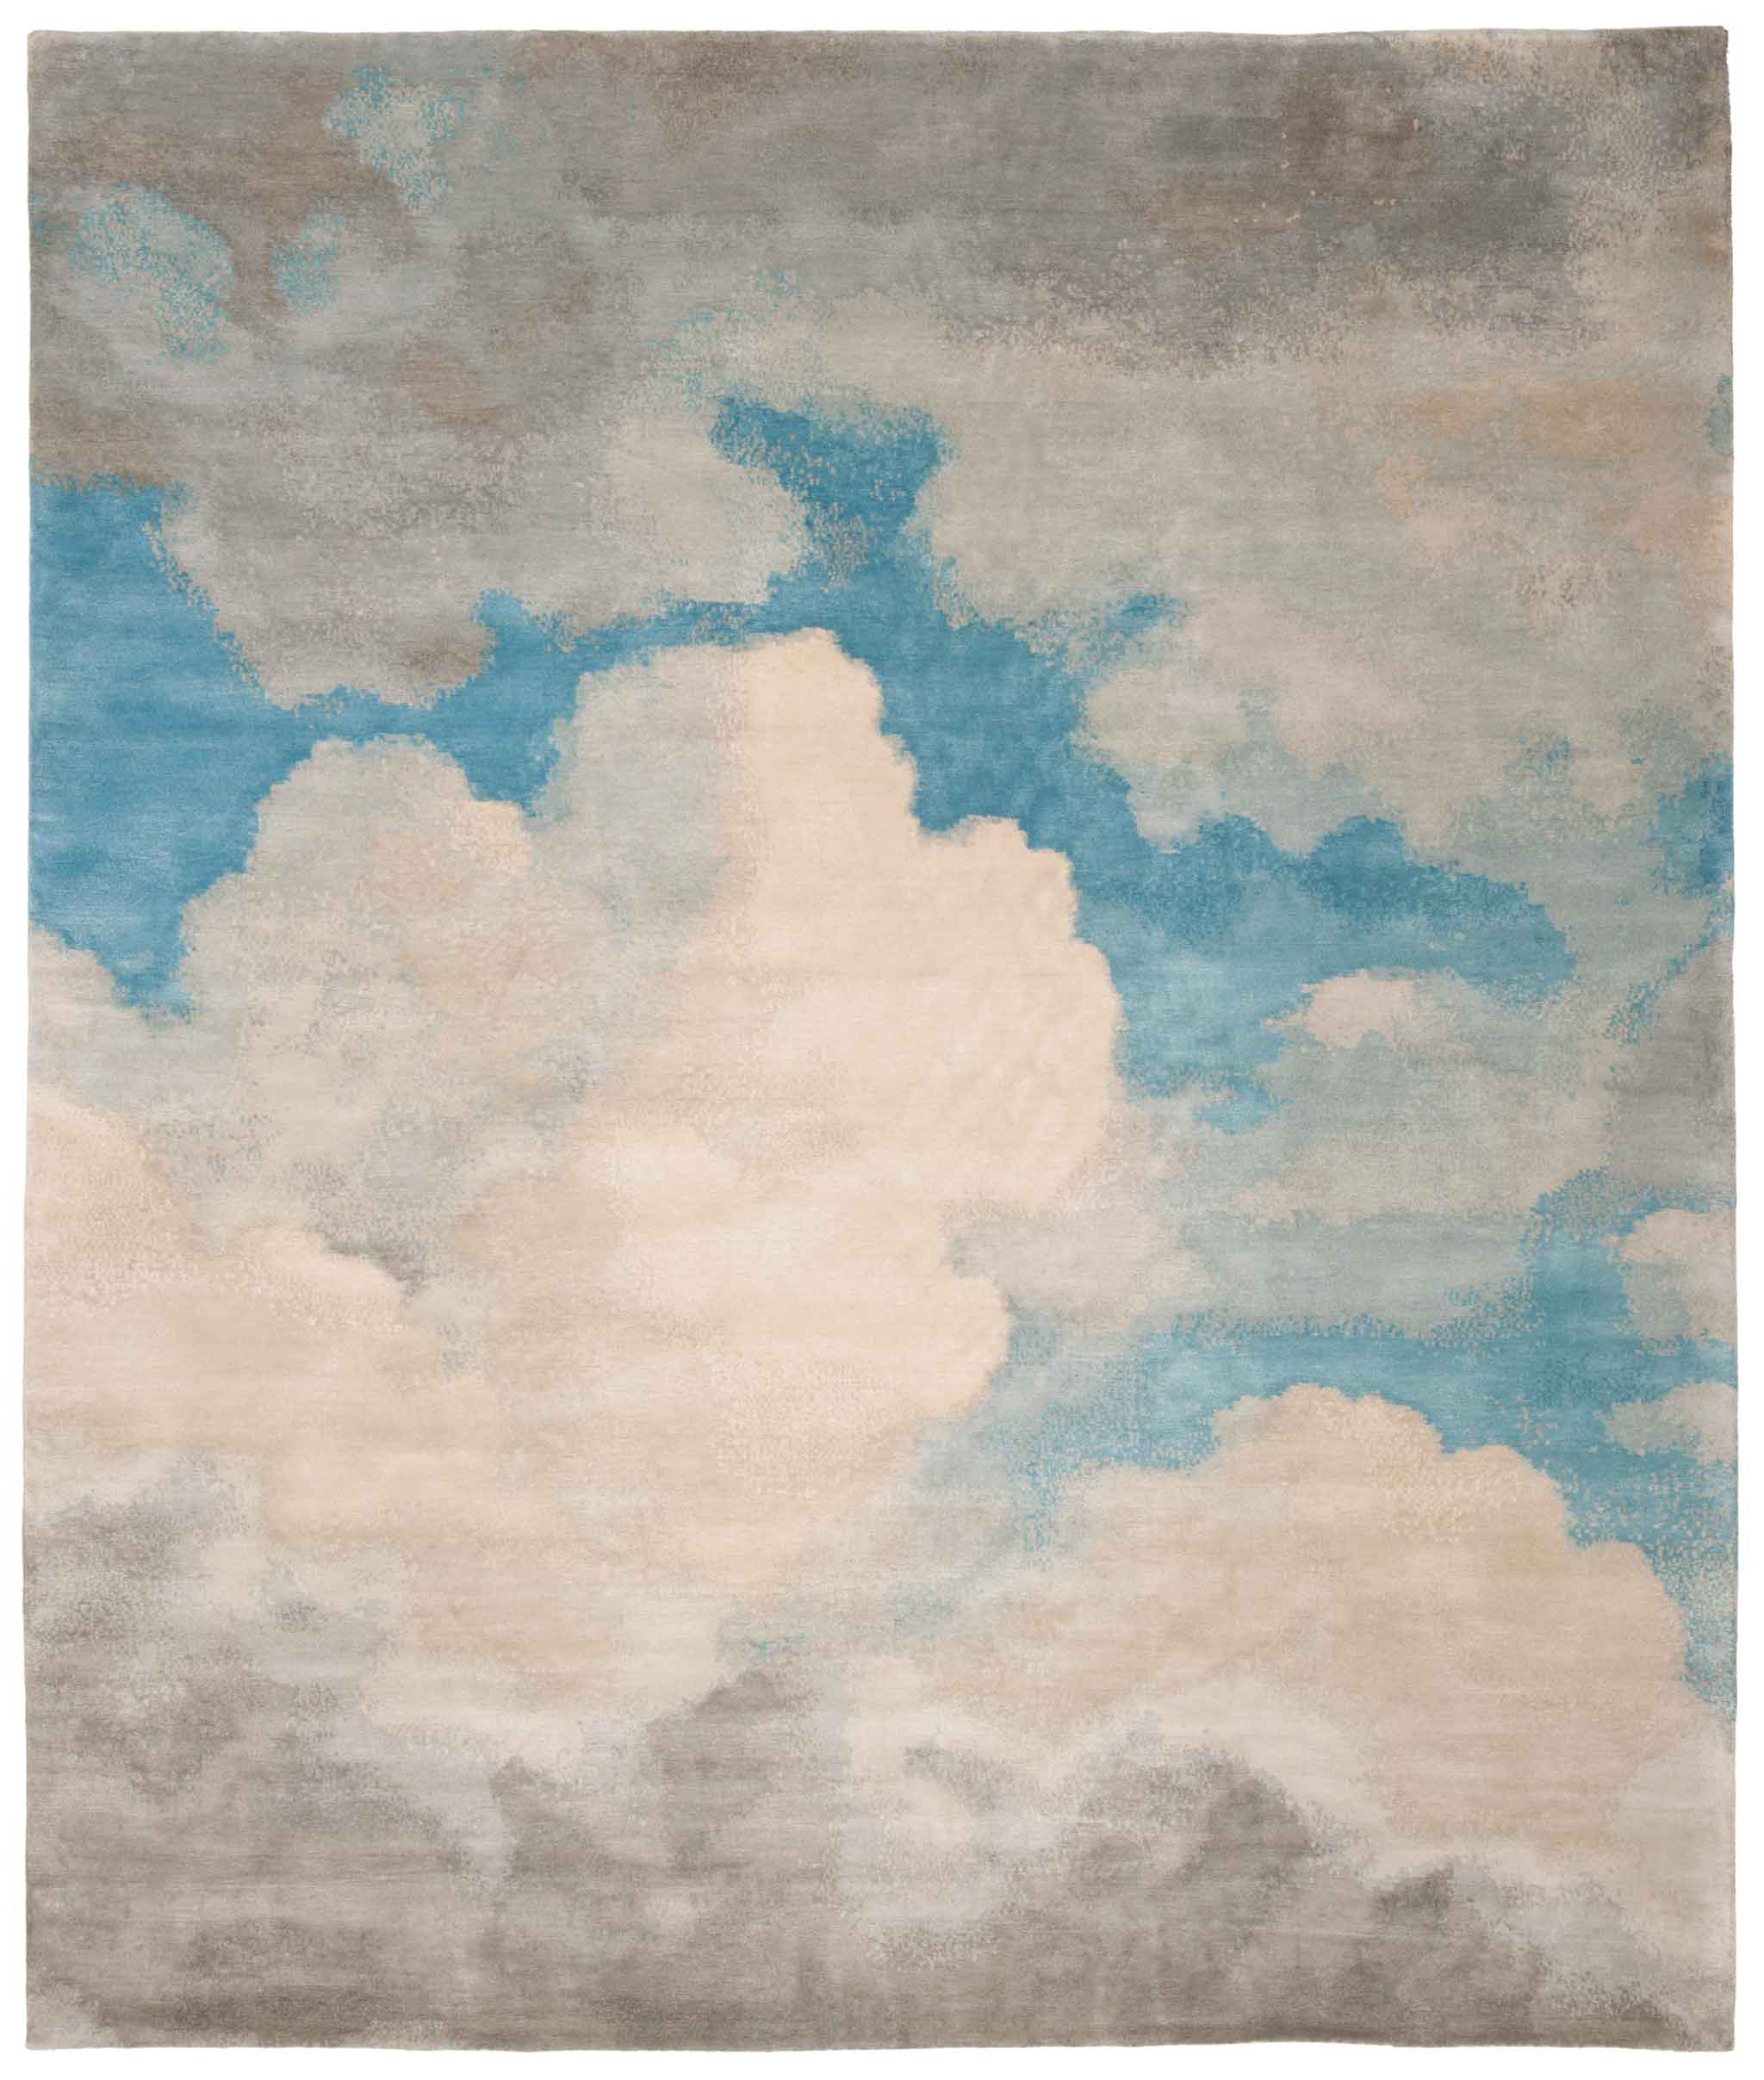 'Cloud' from the 'Heiter bis Wolkig' Collection from Jan Kath. 'Heiter bis wolkig' translates as 'partly cloudy' in English. | Image courtesy of Jan Kath